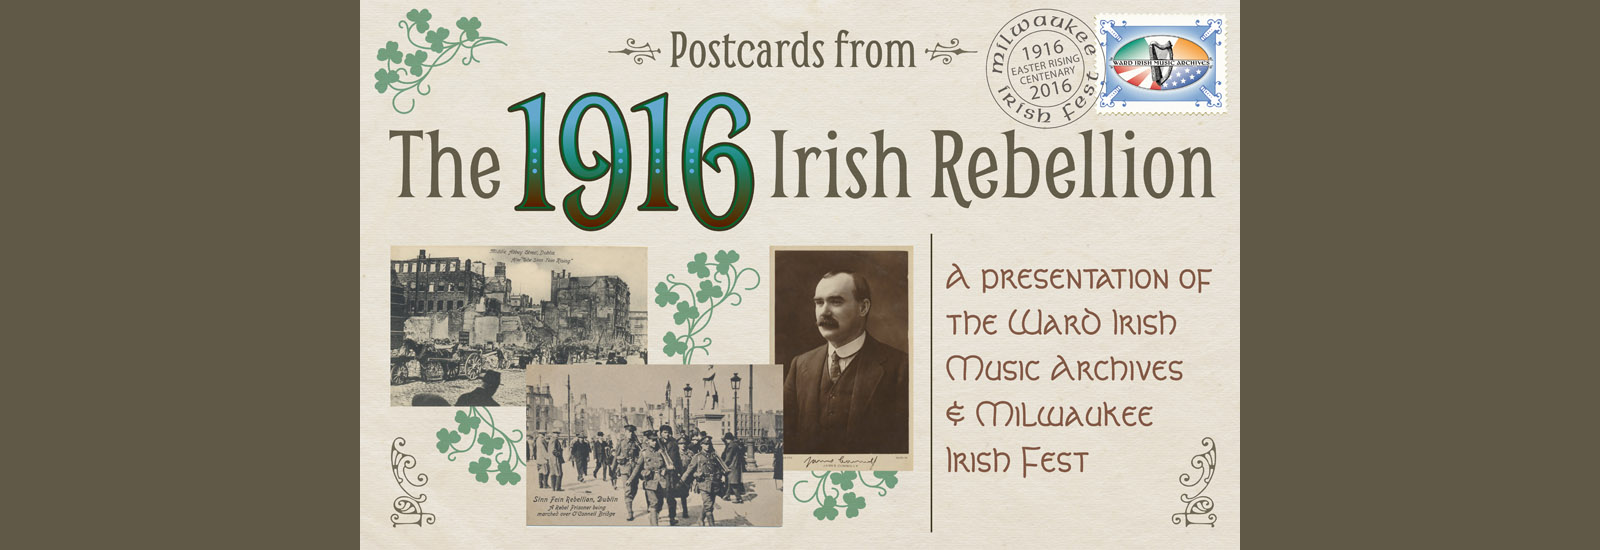 Postcards from the 1916 Irish Rebellion Exhibit